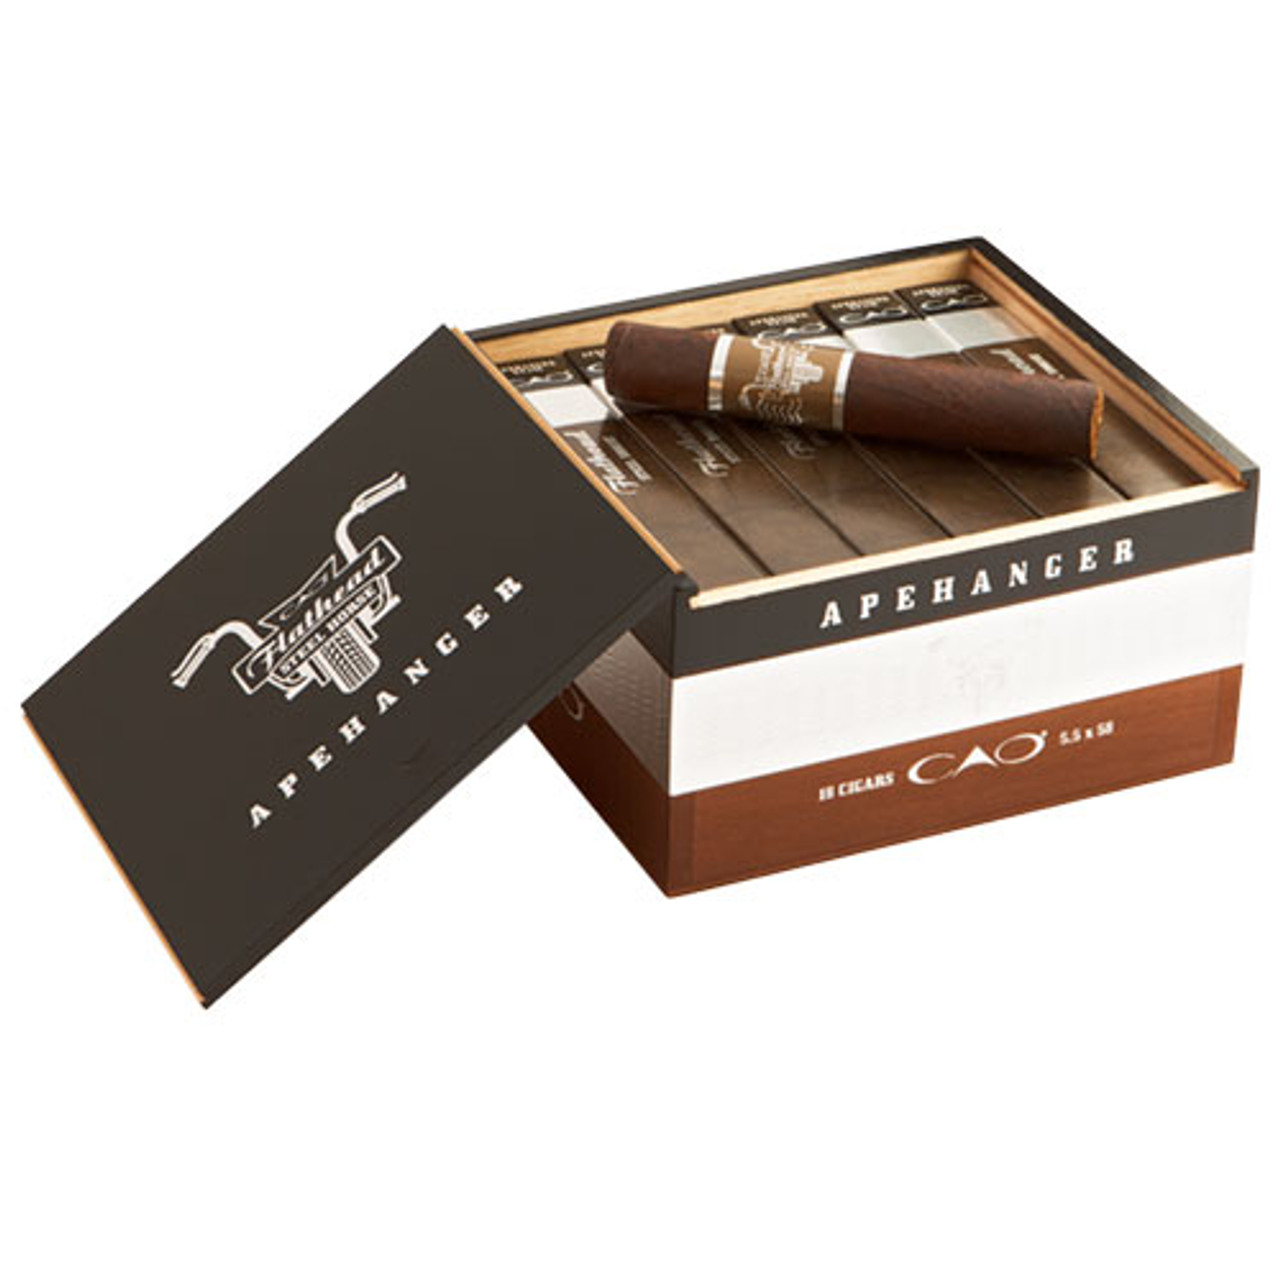 CAO Flathead Steel Horse Roadkill Cigars - 5.5 x 54 (Box of 18)